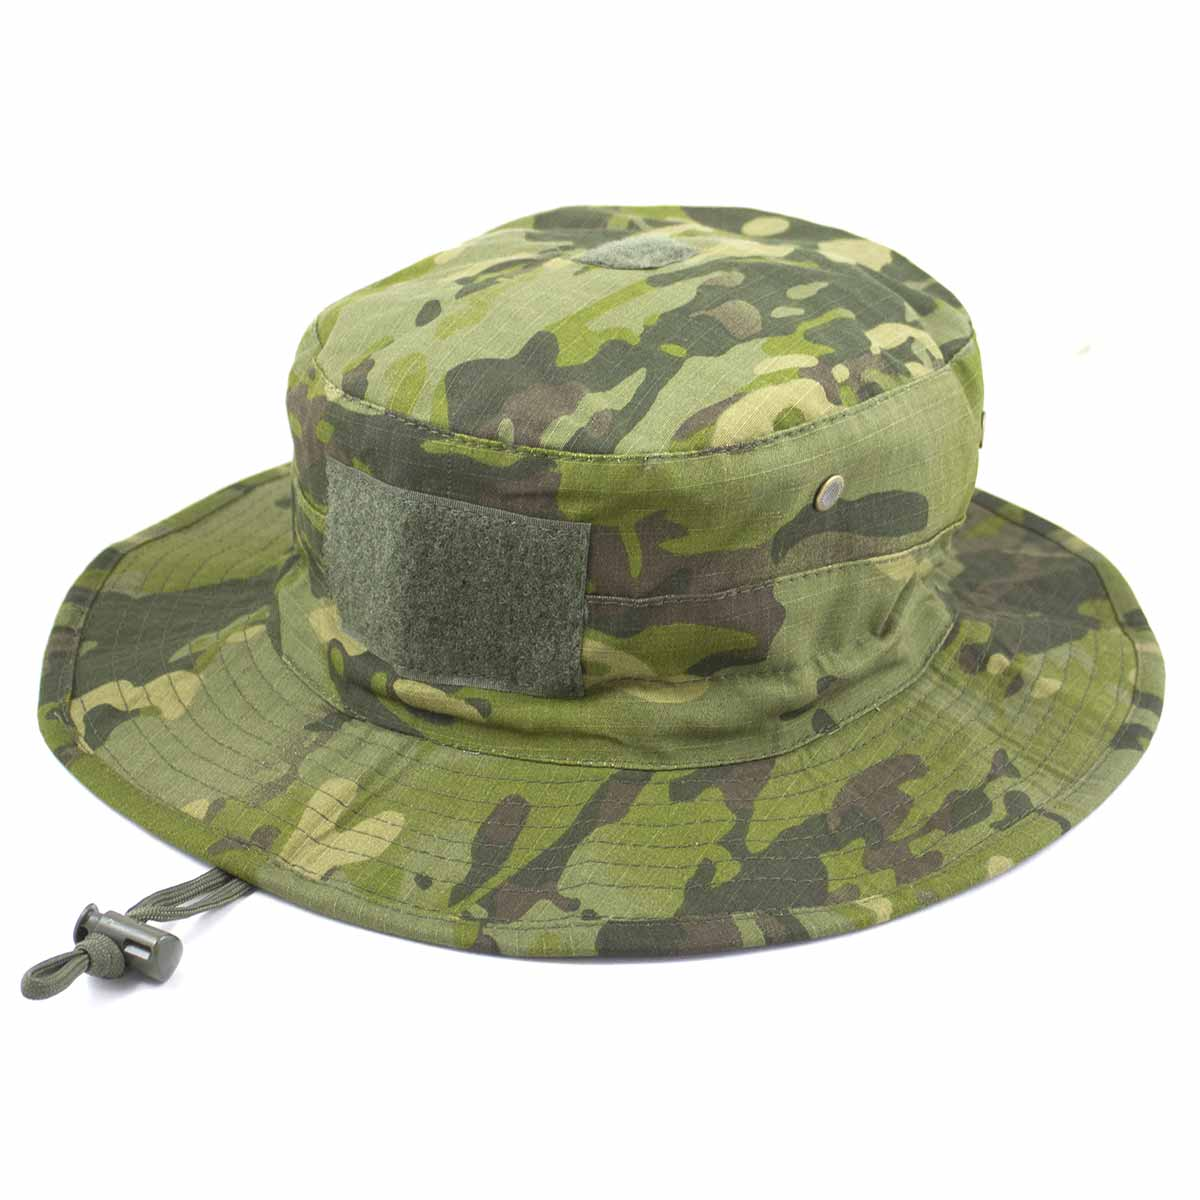 Tactical Boonie Hat MTC Tropical | Bulldog Tactical Gear